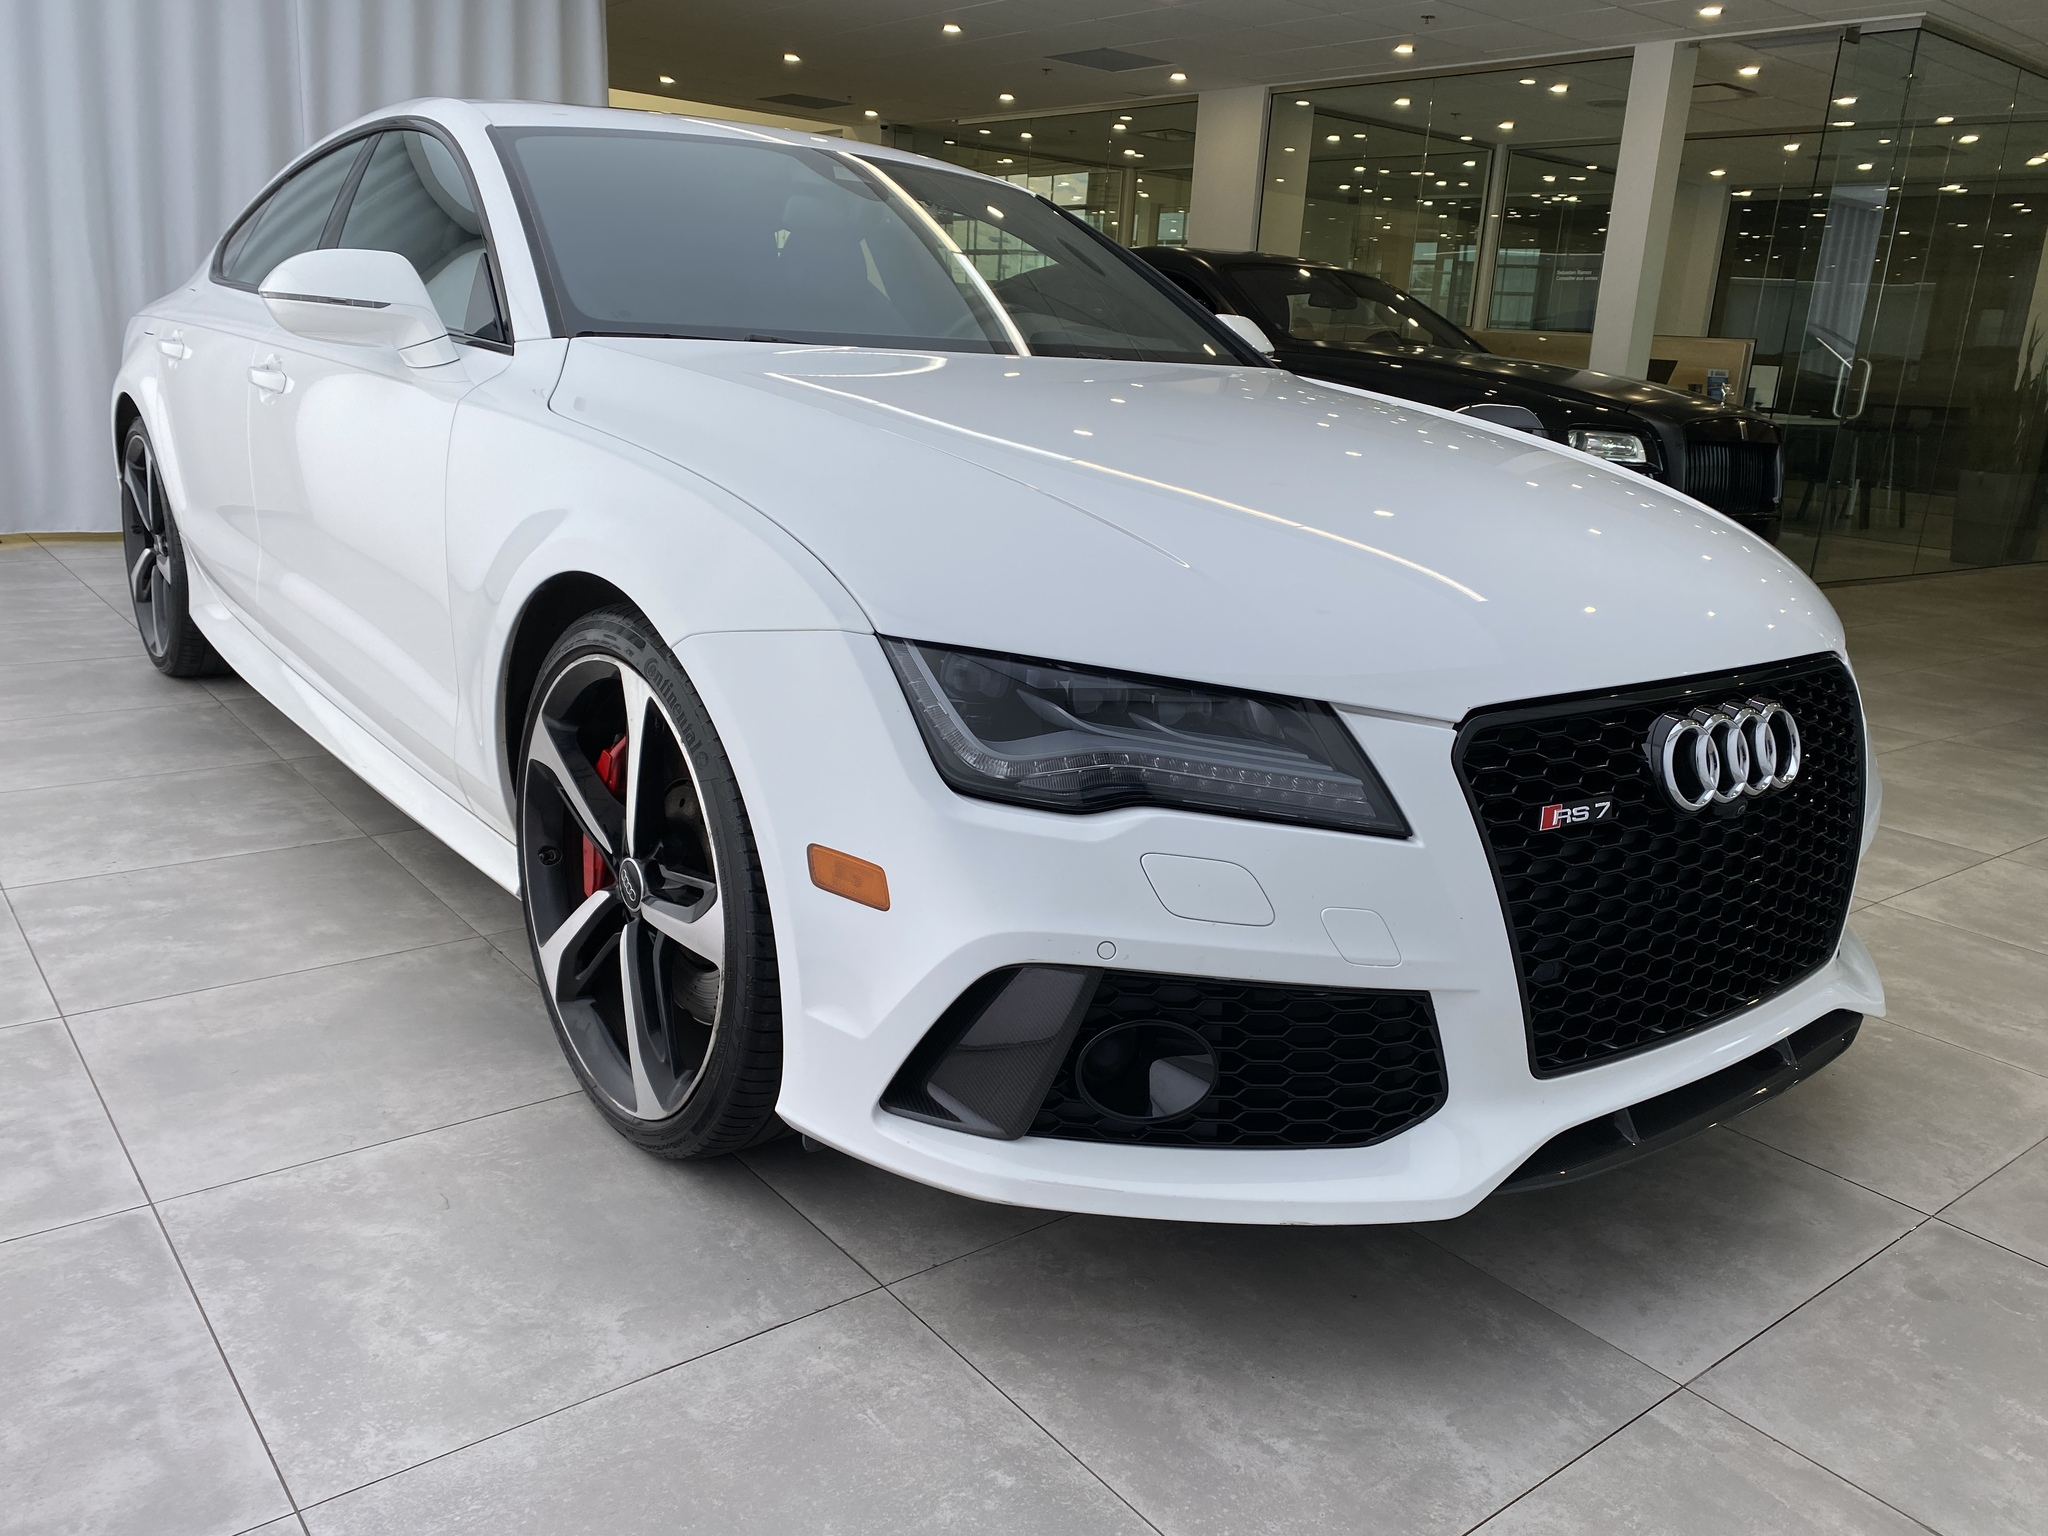 2015 Audi RS 7 RS7 QUATTRO 4.0T 560HP NIGHTVIEW CARBON OPTICS complet